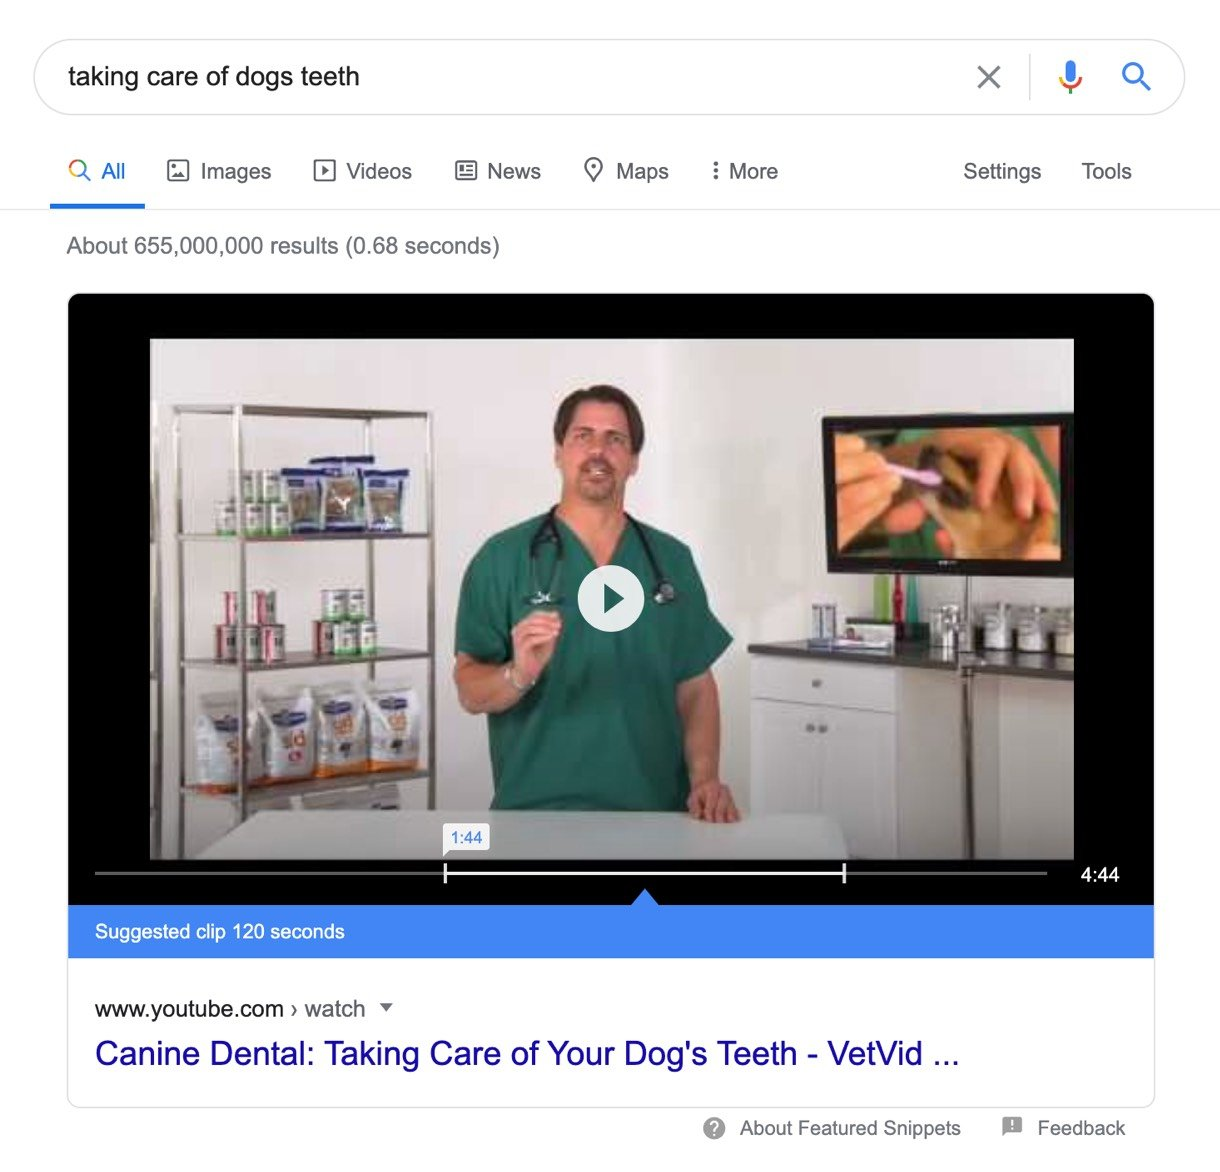 video search result taking care of dogs teeth